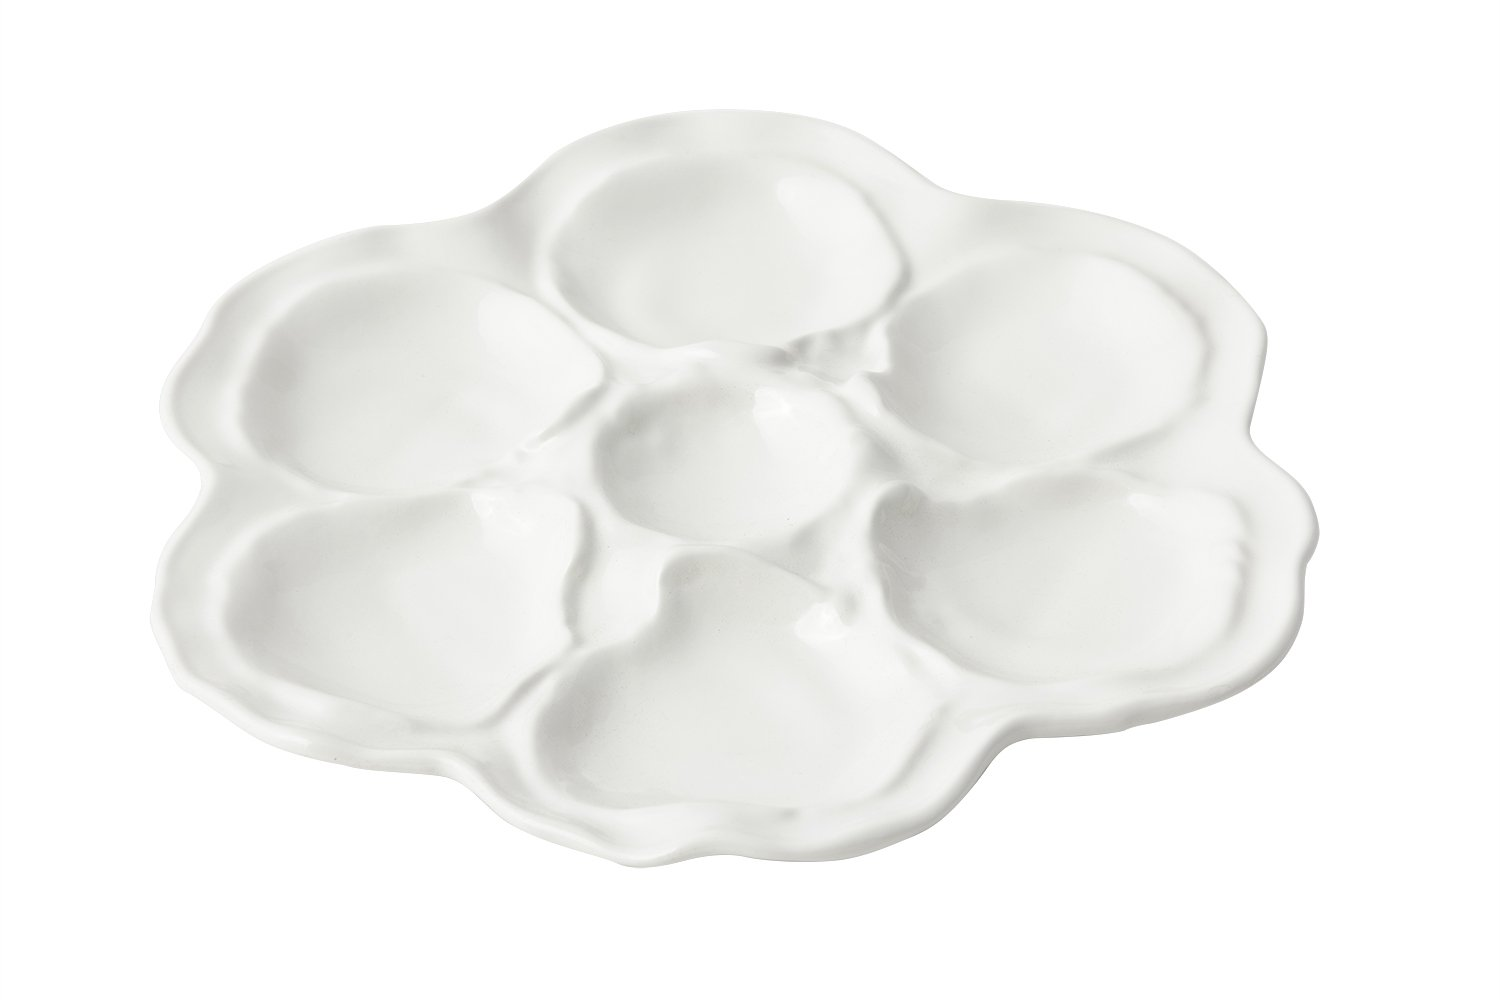 Bon Chef 5079 Aluminum 6 Hole Oyster Plate, 10'' Diameter, Sandstone White (Pack of 6)